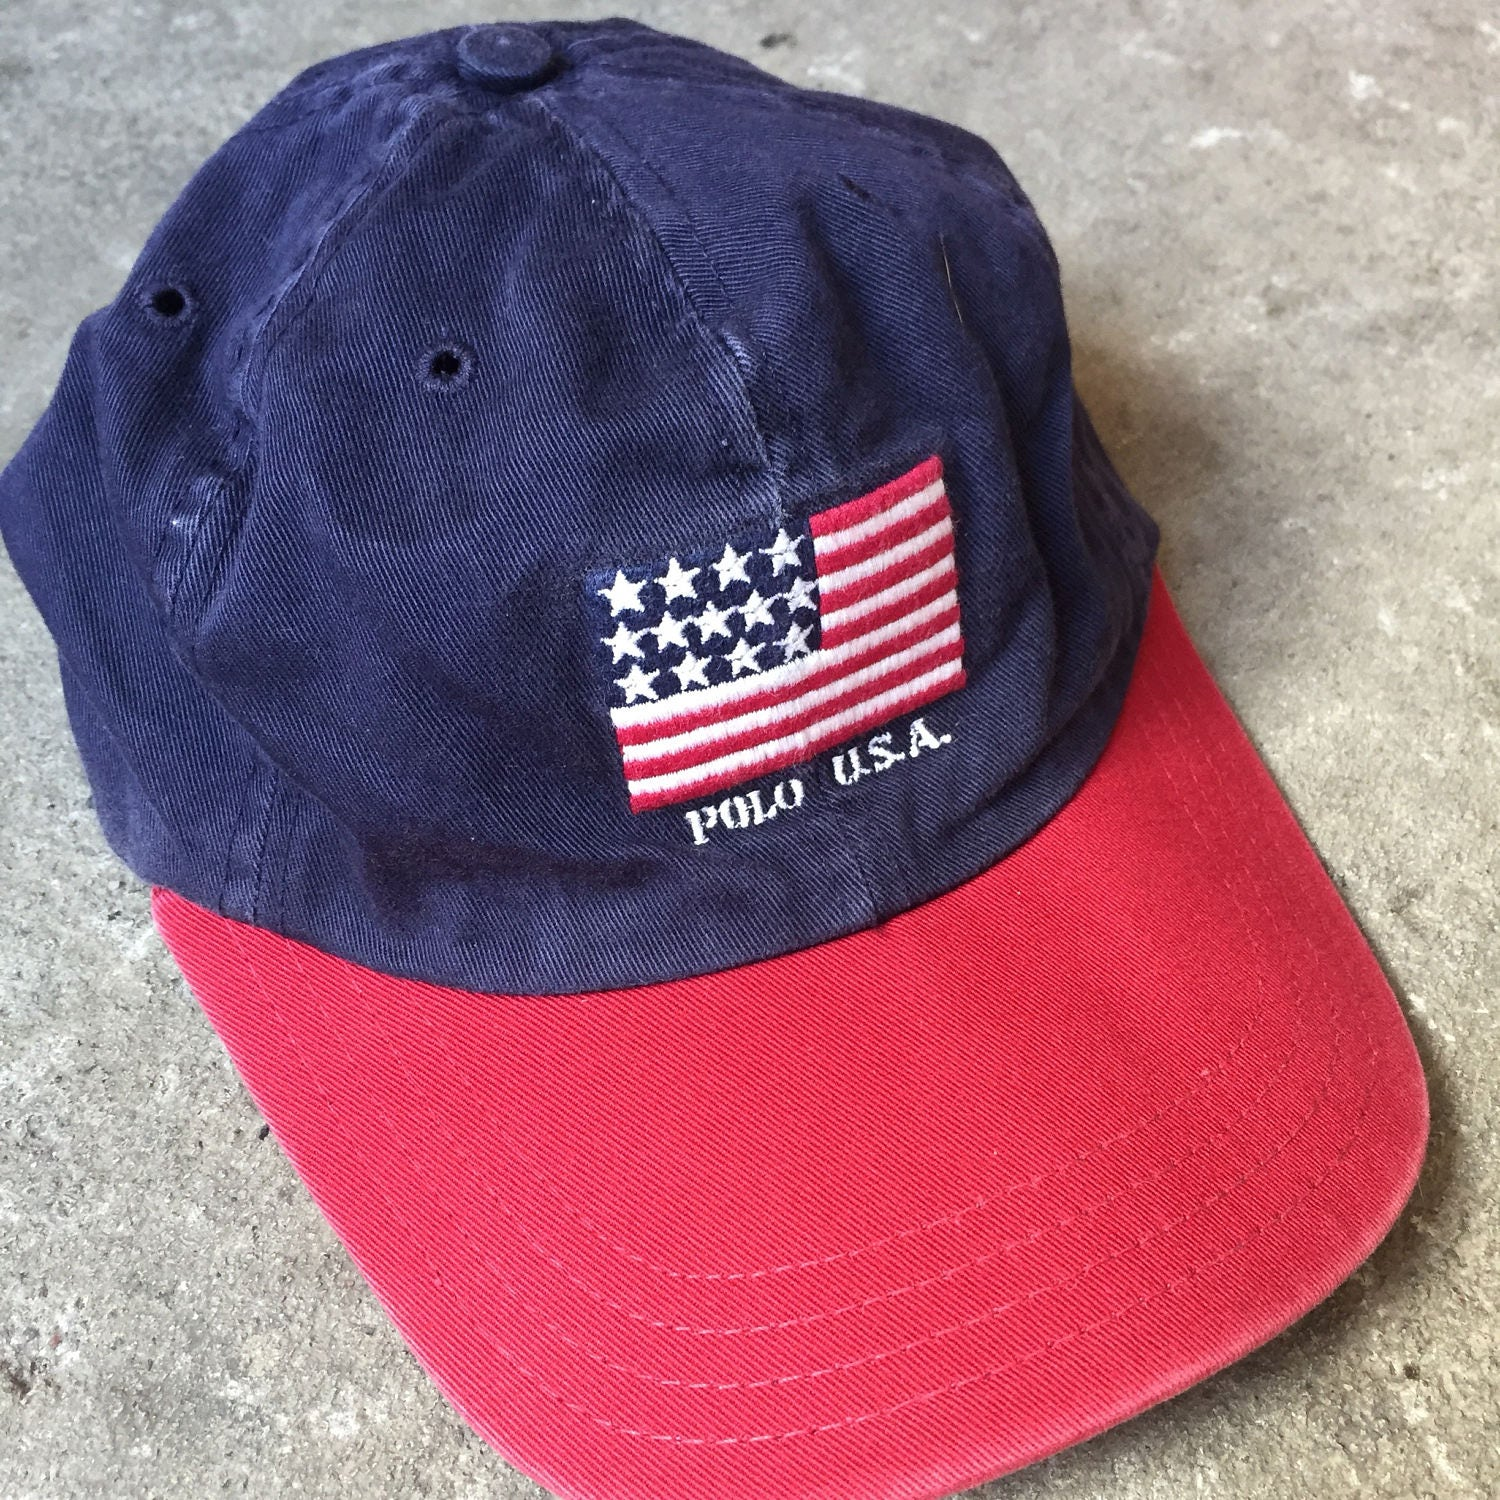 Vintage 90s Polo ralph lauren USA flag logo hat made in USA  be61903387d67